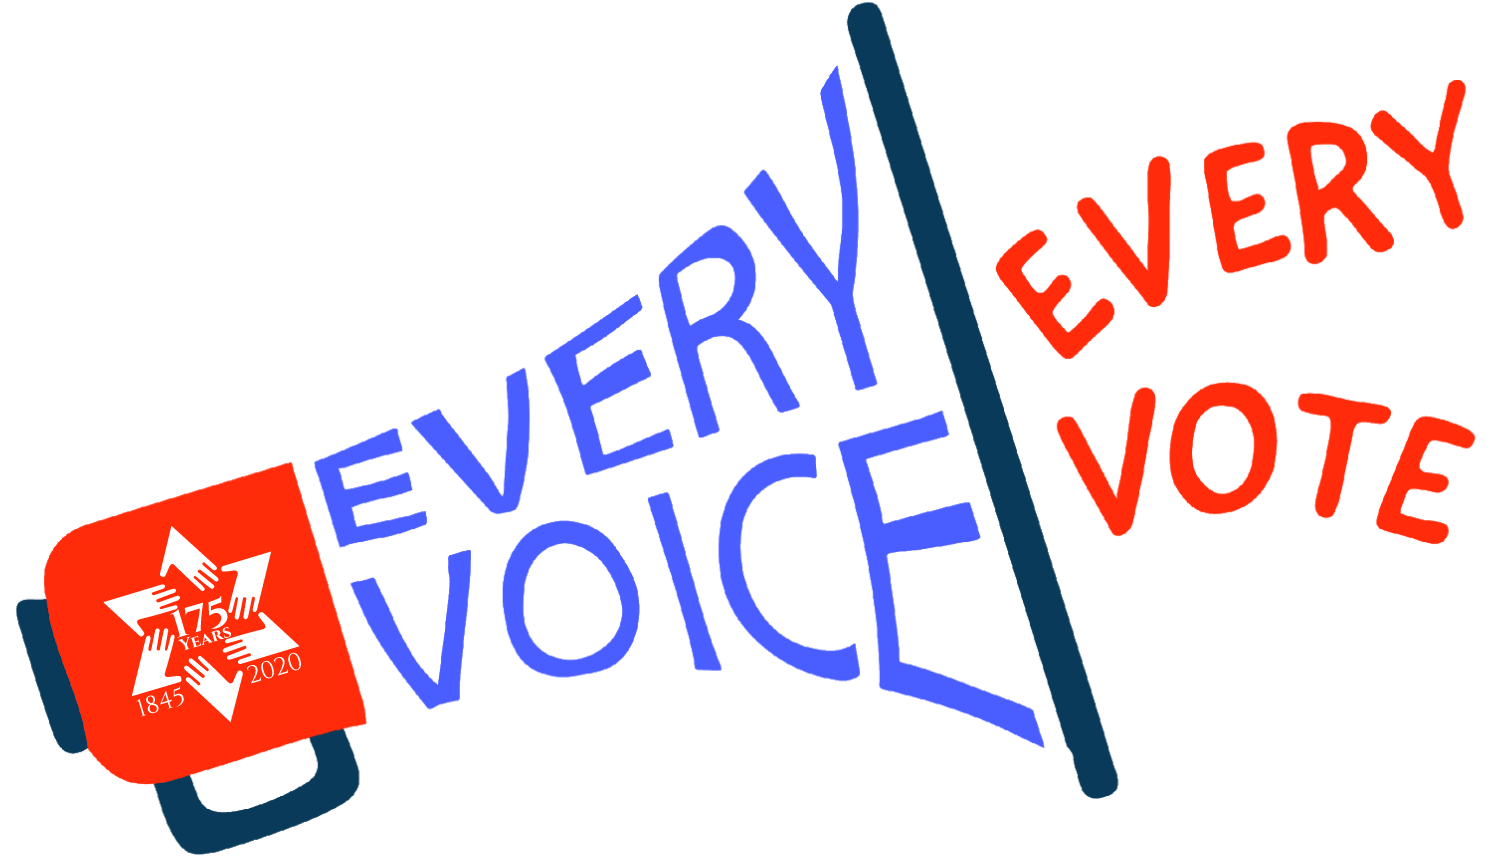 Every Voice, Every Vote Logo